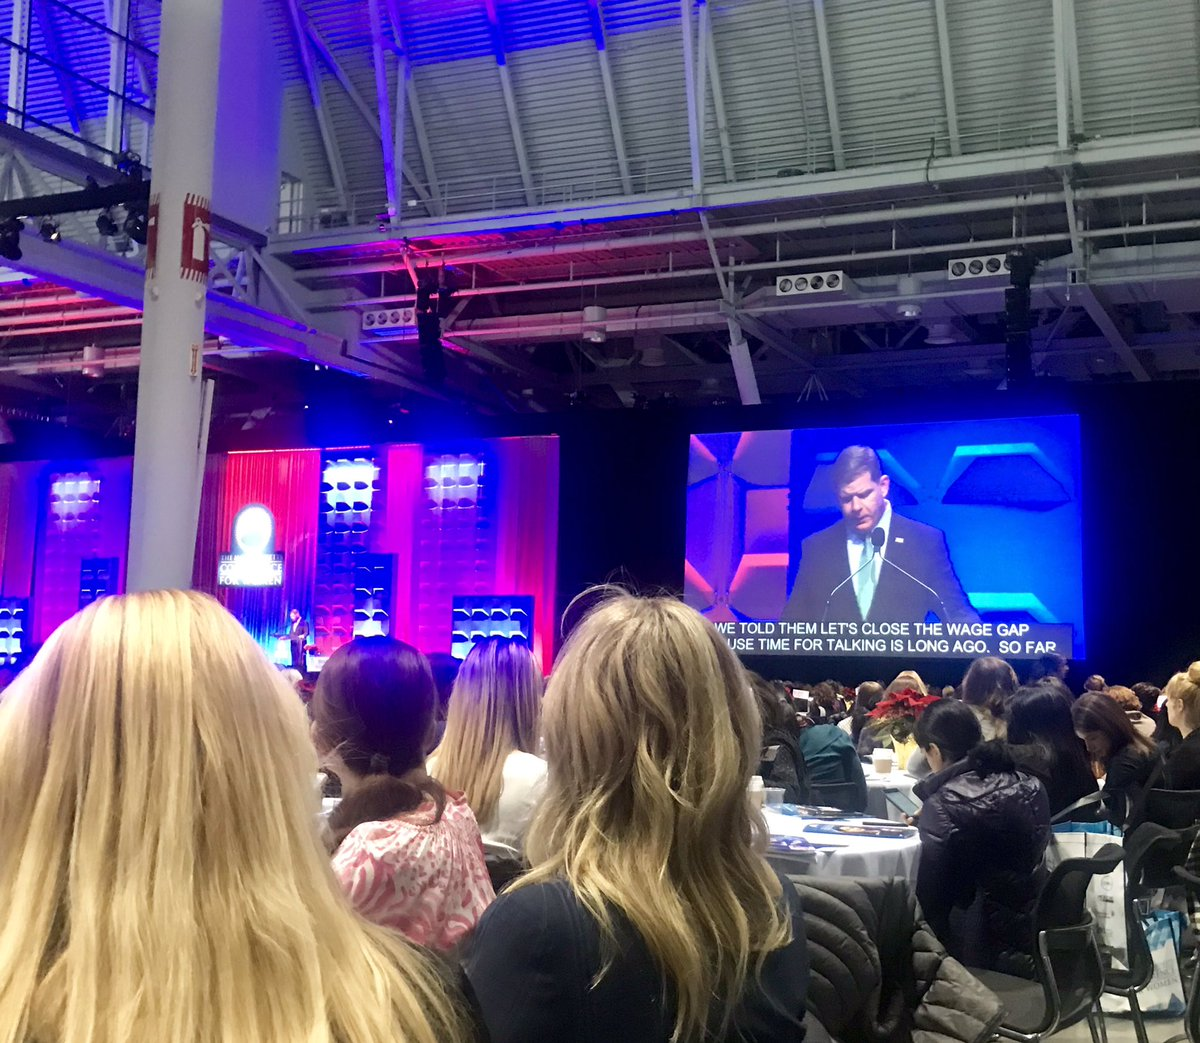 """When women succeed, Massachusetts succeeds. This is about opportunity and equal rights, and about who we are as a community."" - @marty_walsh #MassWomen <br>http://pic.twitter.com/ypYKJFeZpR"